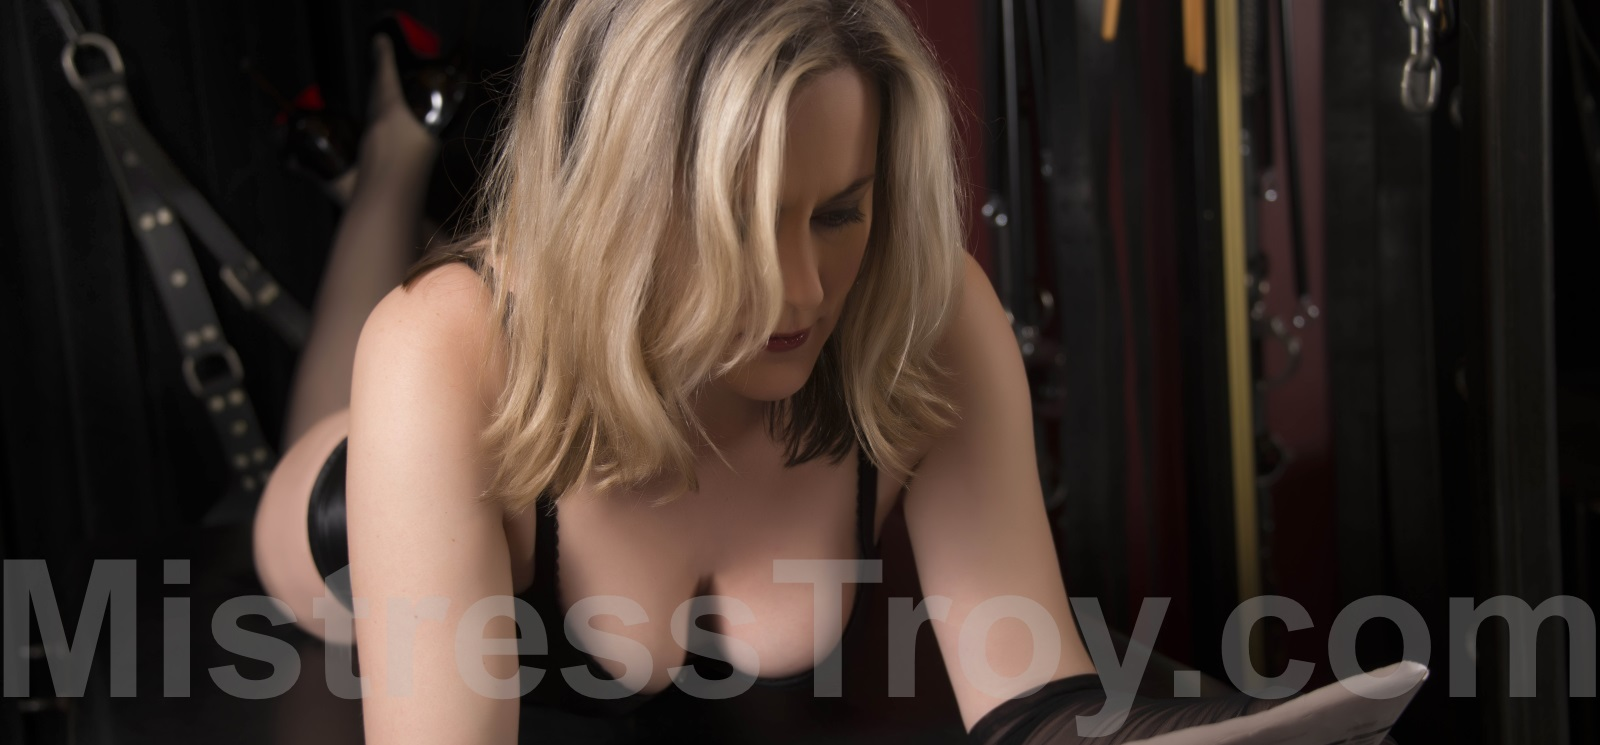 MISTRESS TROY Professional Dominatrix Manhattan NYC New York provides updates on newly acquired BDSM equipment and fetish toys 		 	  and wardrobe, upcoming travel dates and other femdom news